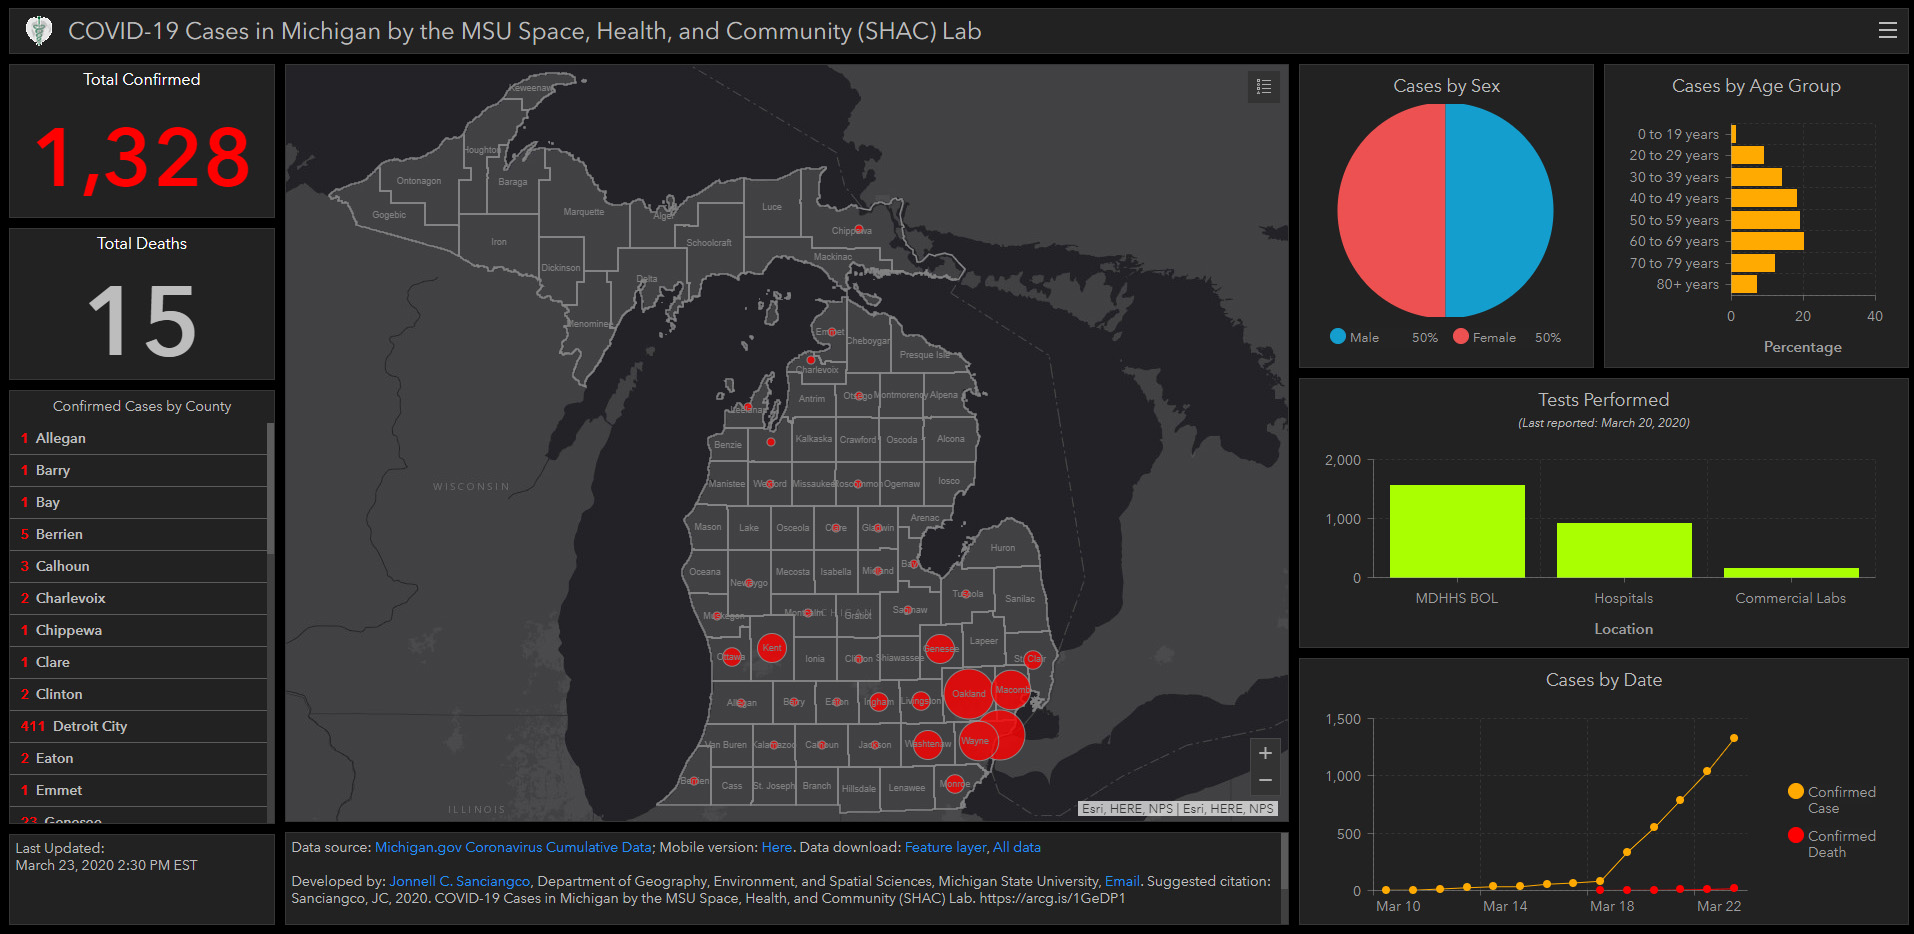 Coronavirus 2019 Dashboard for Michigan